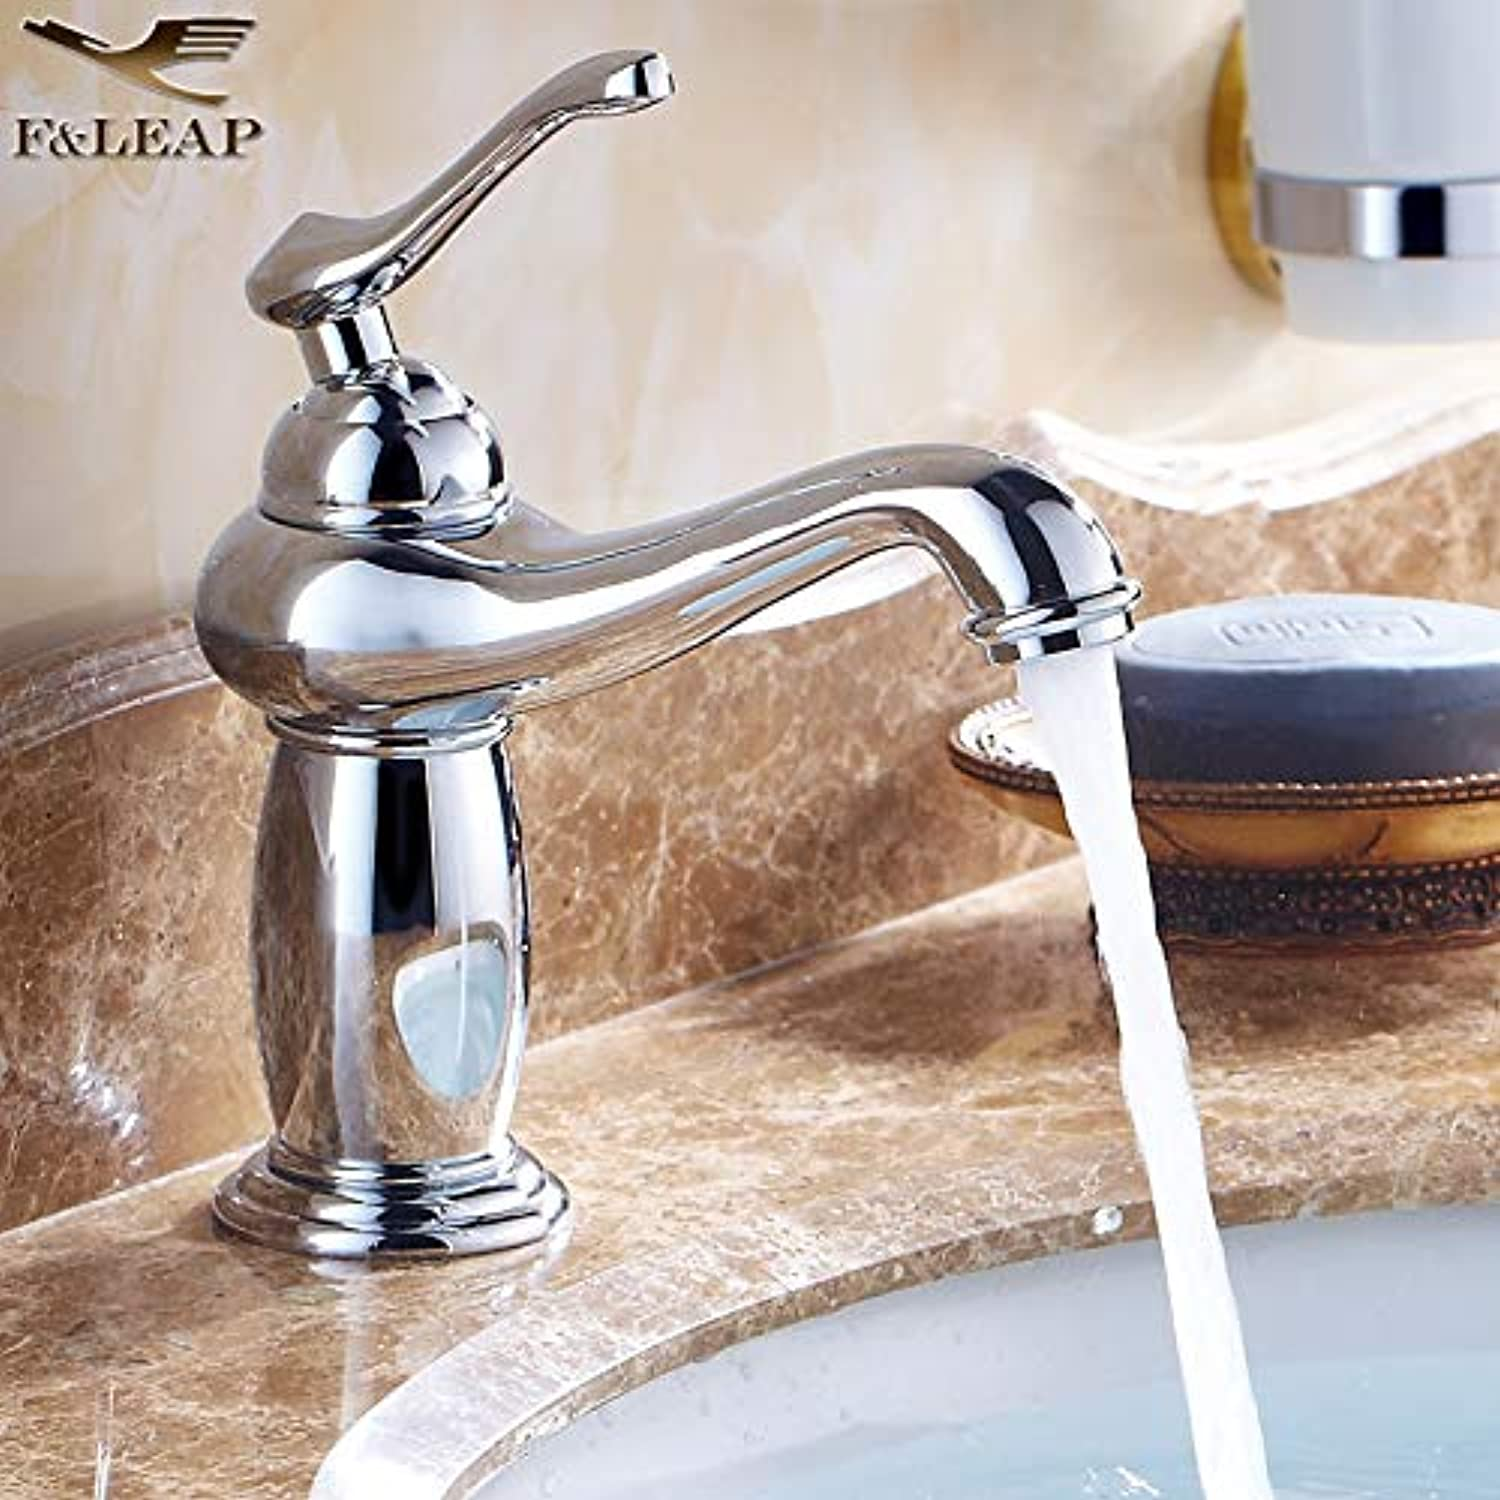 Hlluya Professional Sink Mixer Tap Kitchen Faucet Hot and cold water taps gold pink gold bluee-tiled table top antique basin faucet, of God Light Fittings